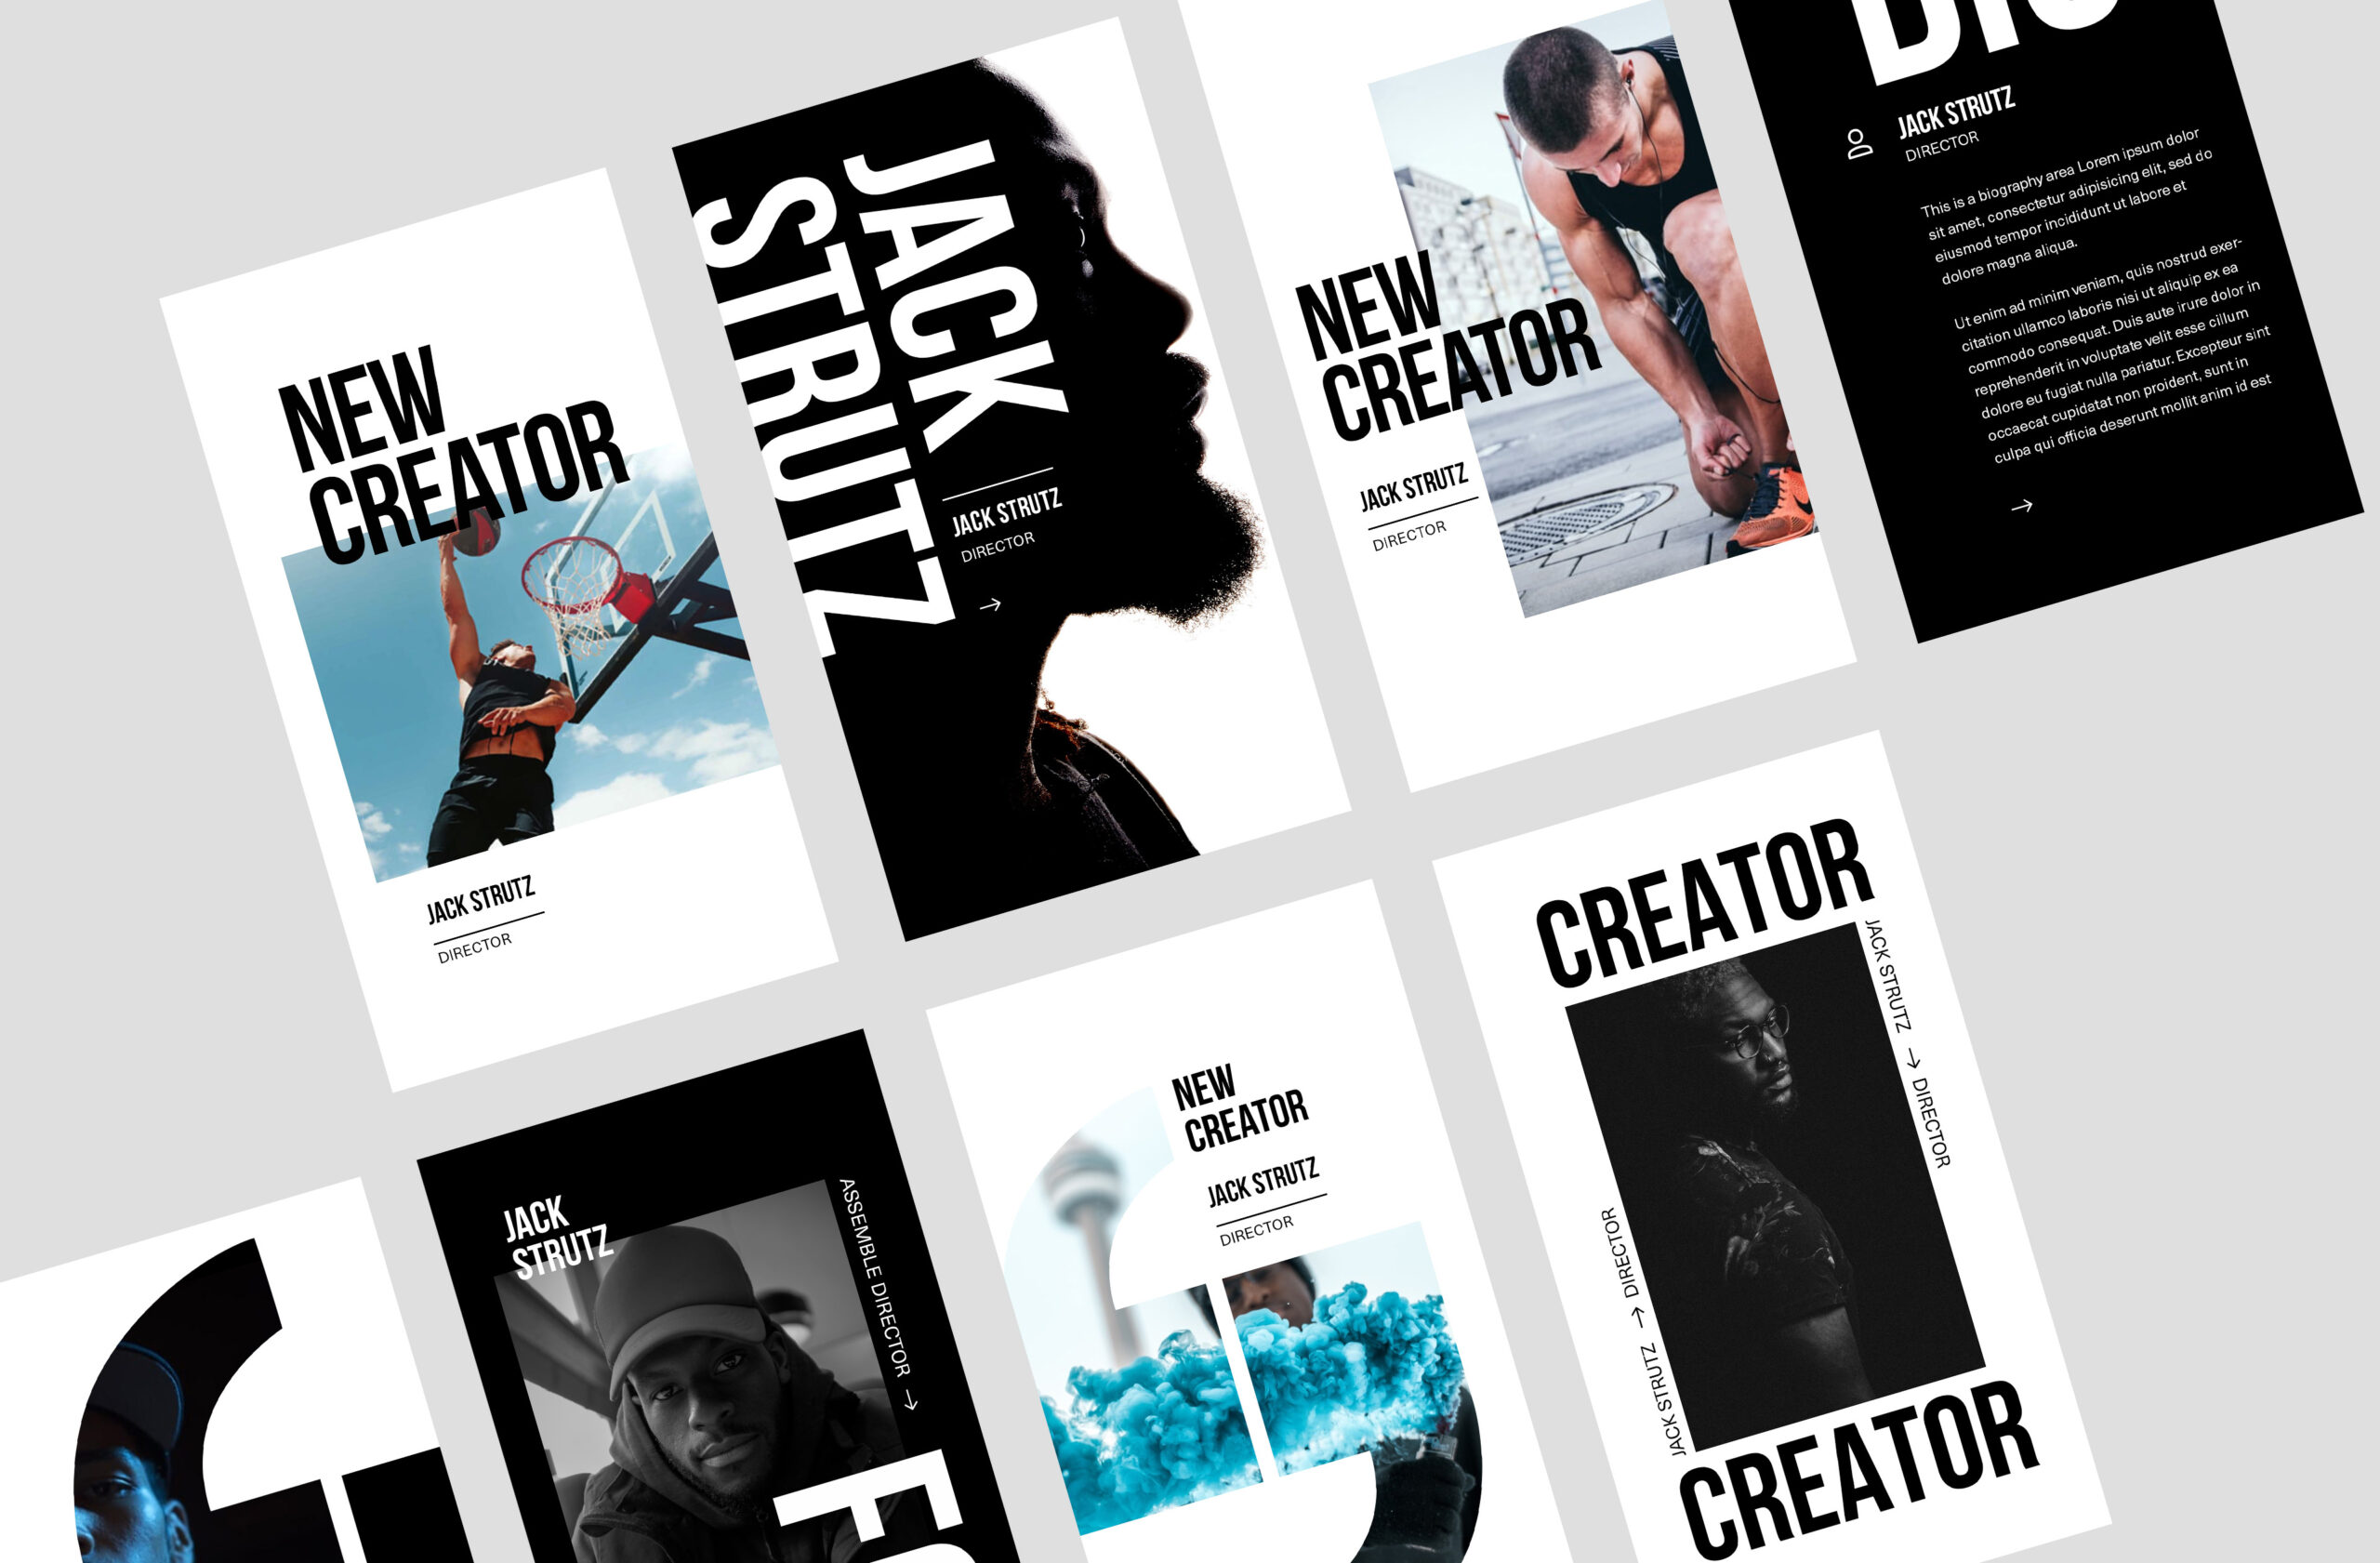 creator profile instagram template design with black and white photos and quotes